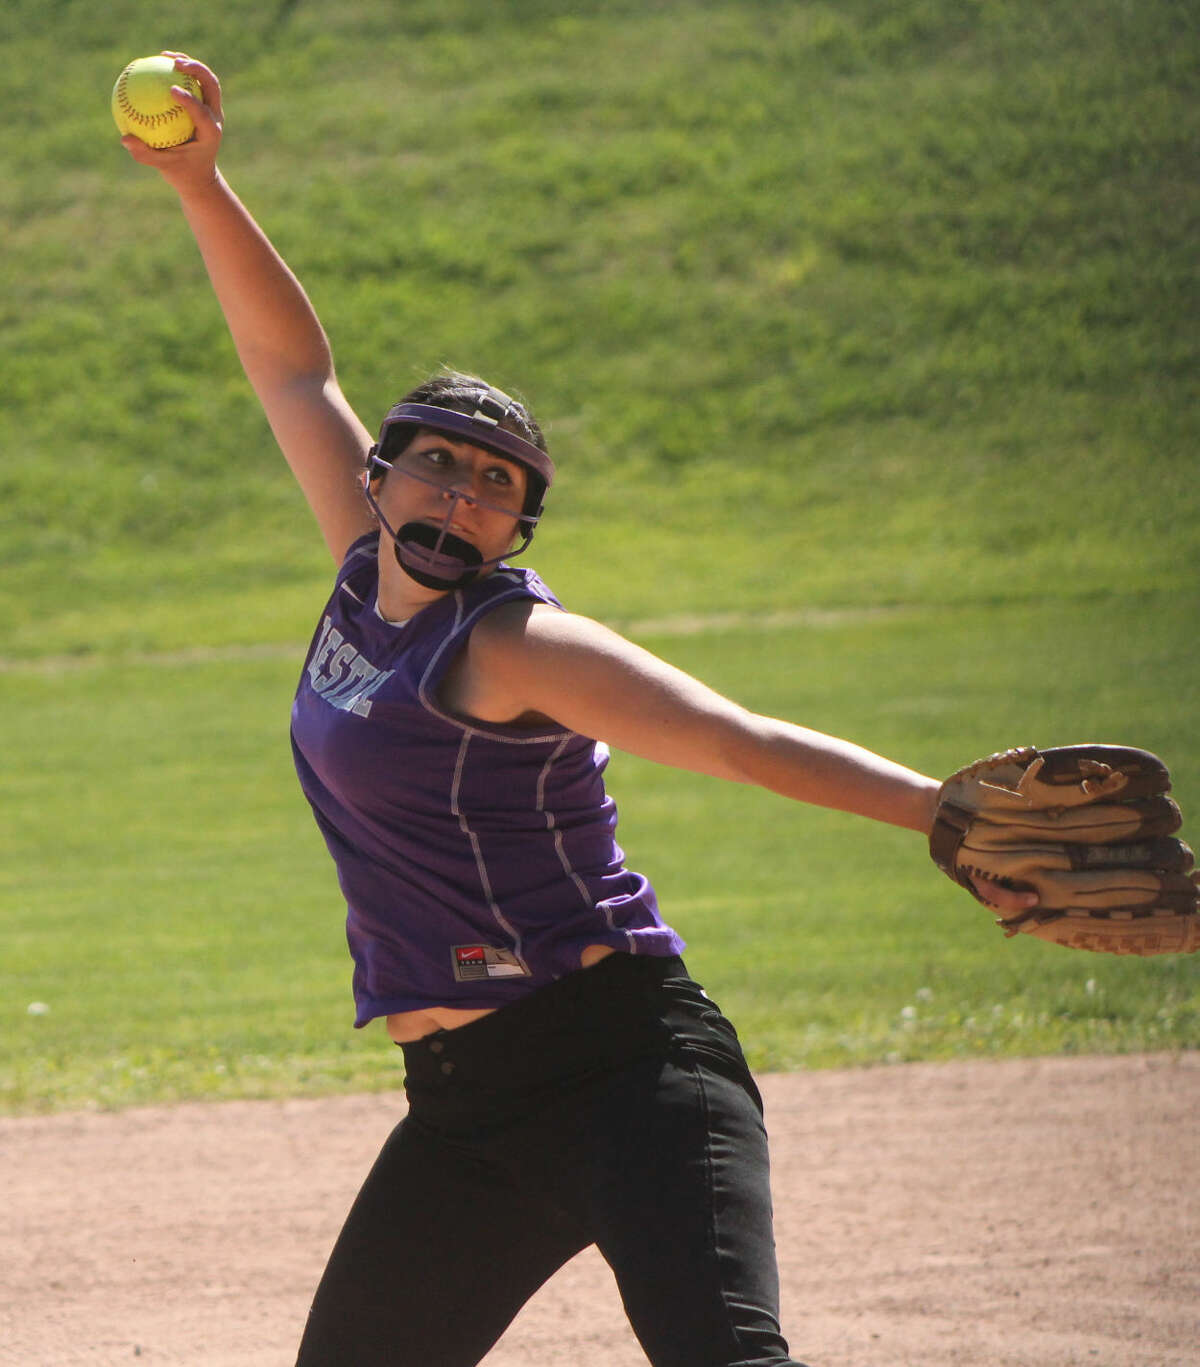 Westhill's Casey Dicine kept Ridgefield off the board in the Vikings win on Saturday. (Stamford Times/Joe Ryan)